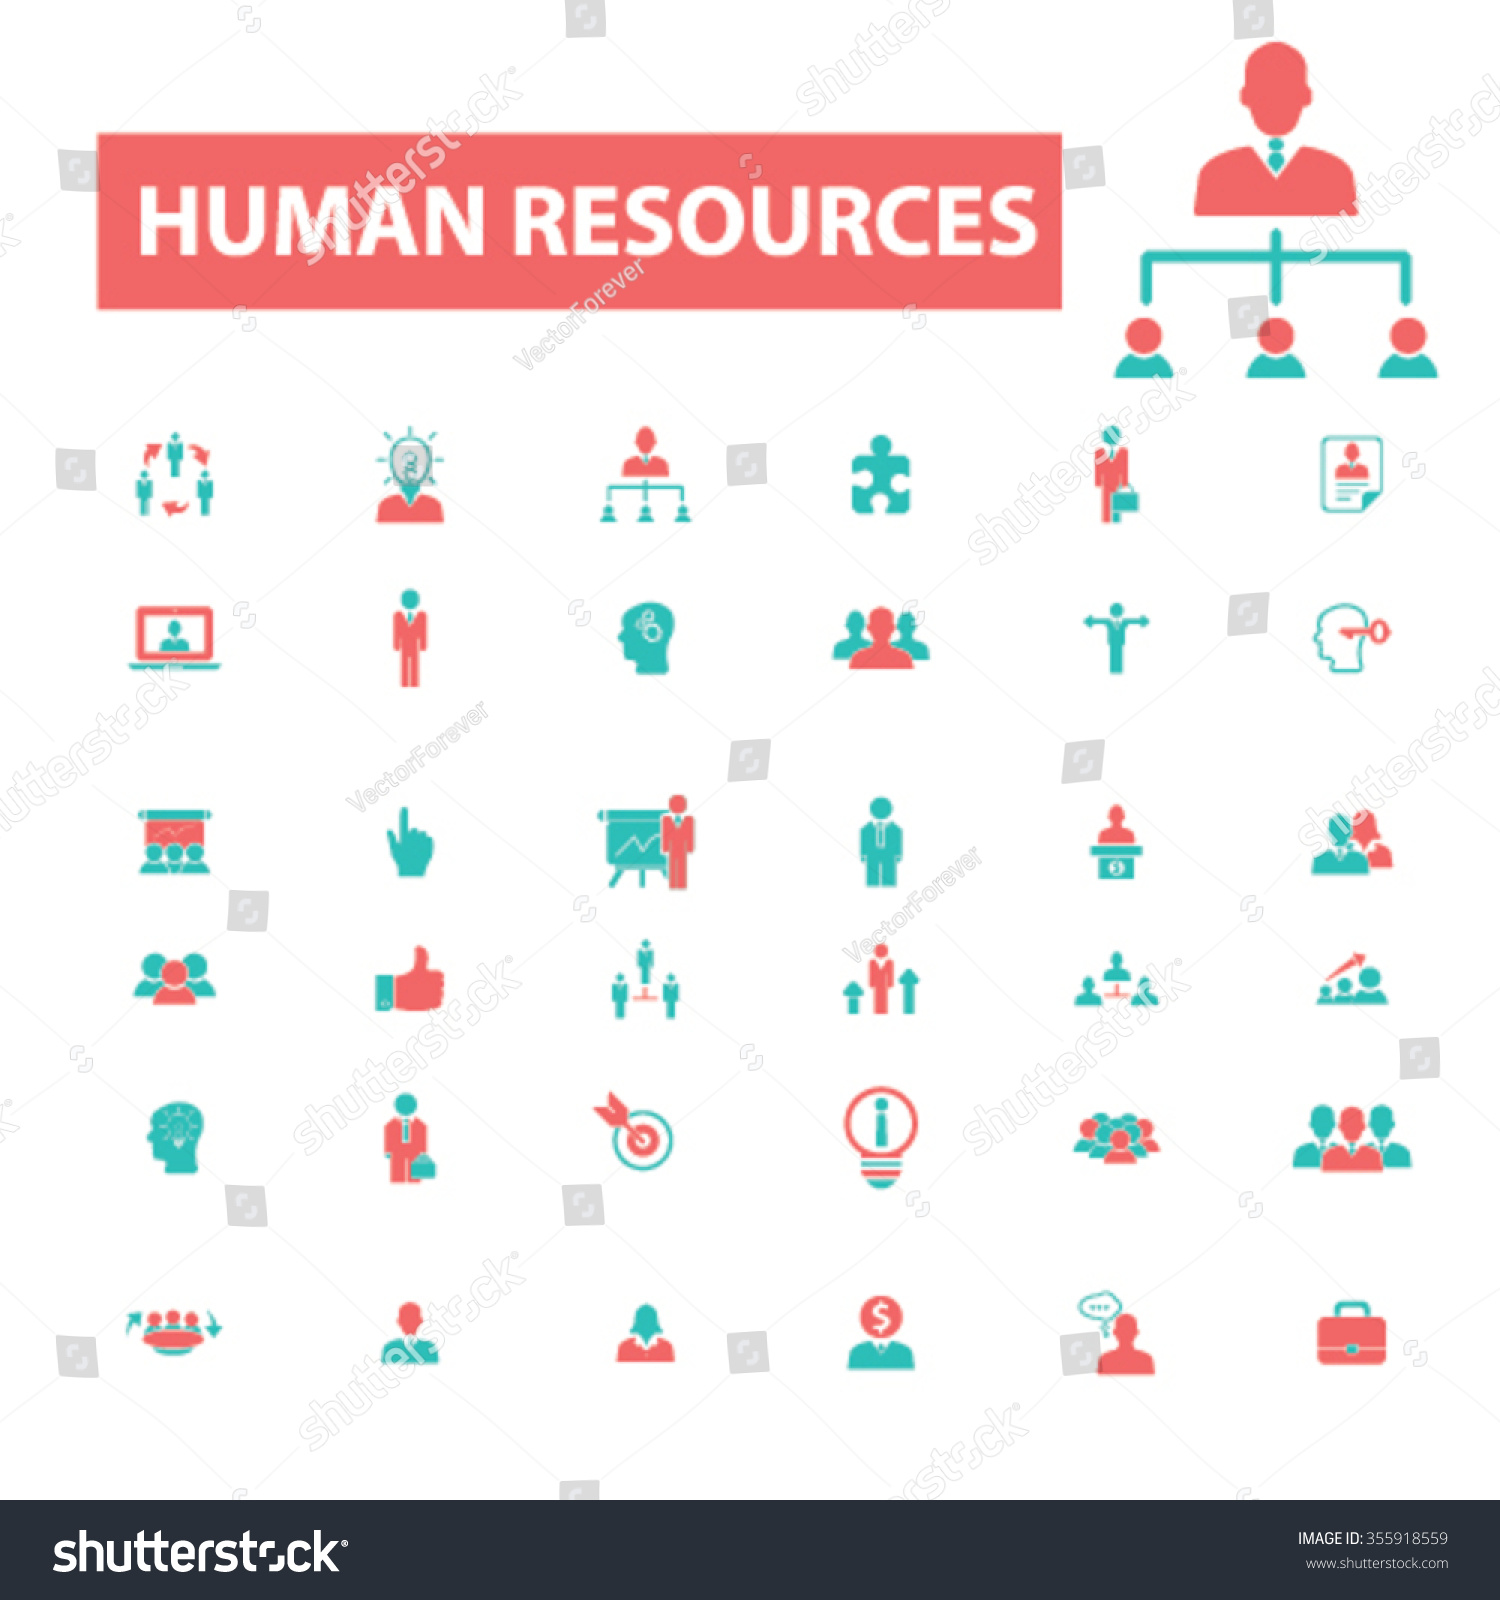 Human Resources Organization Businessman Management Icons. Dentists Colorado Springs How To Get Mortgage. Best Ecommerce Website Builder. X Ray Tech School San Diego Meaning Of Ria. Online Business Funding Chase Bank J P Morgan. How To Get The Best Mortgage Rates. Naugatuck Animal Control Hp Proliant Dl380g6. Pain Under Right Shoulder Blade. Ground Penetrating Radar Nj Bmw 530i Manual